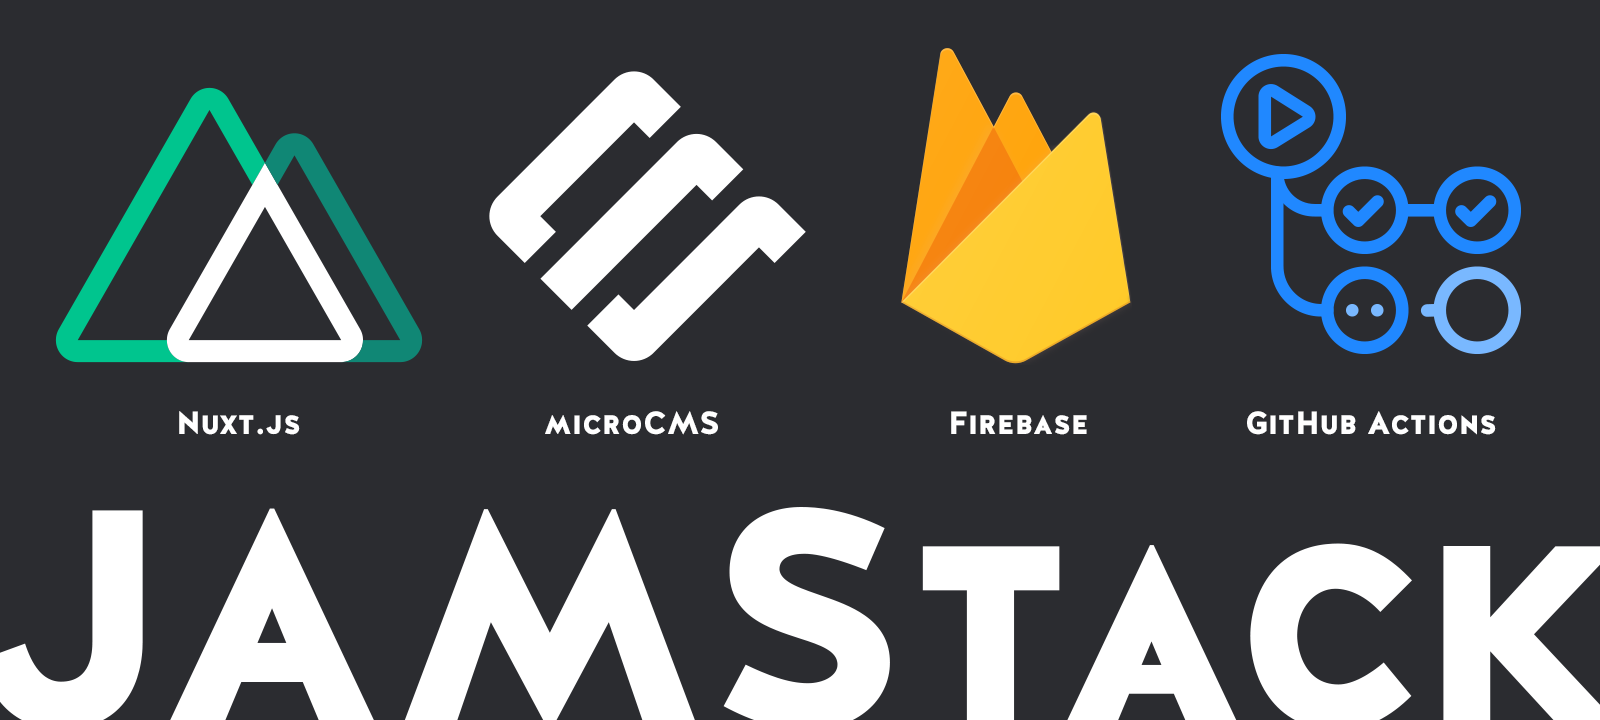 Nuxt.js + microCMS + Firebase + GitHub Actions で JAMstack なブログに移行した